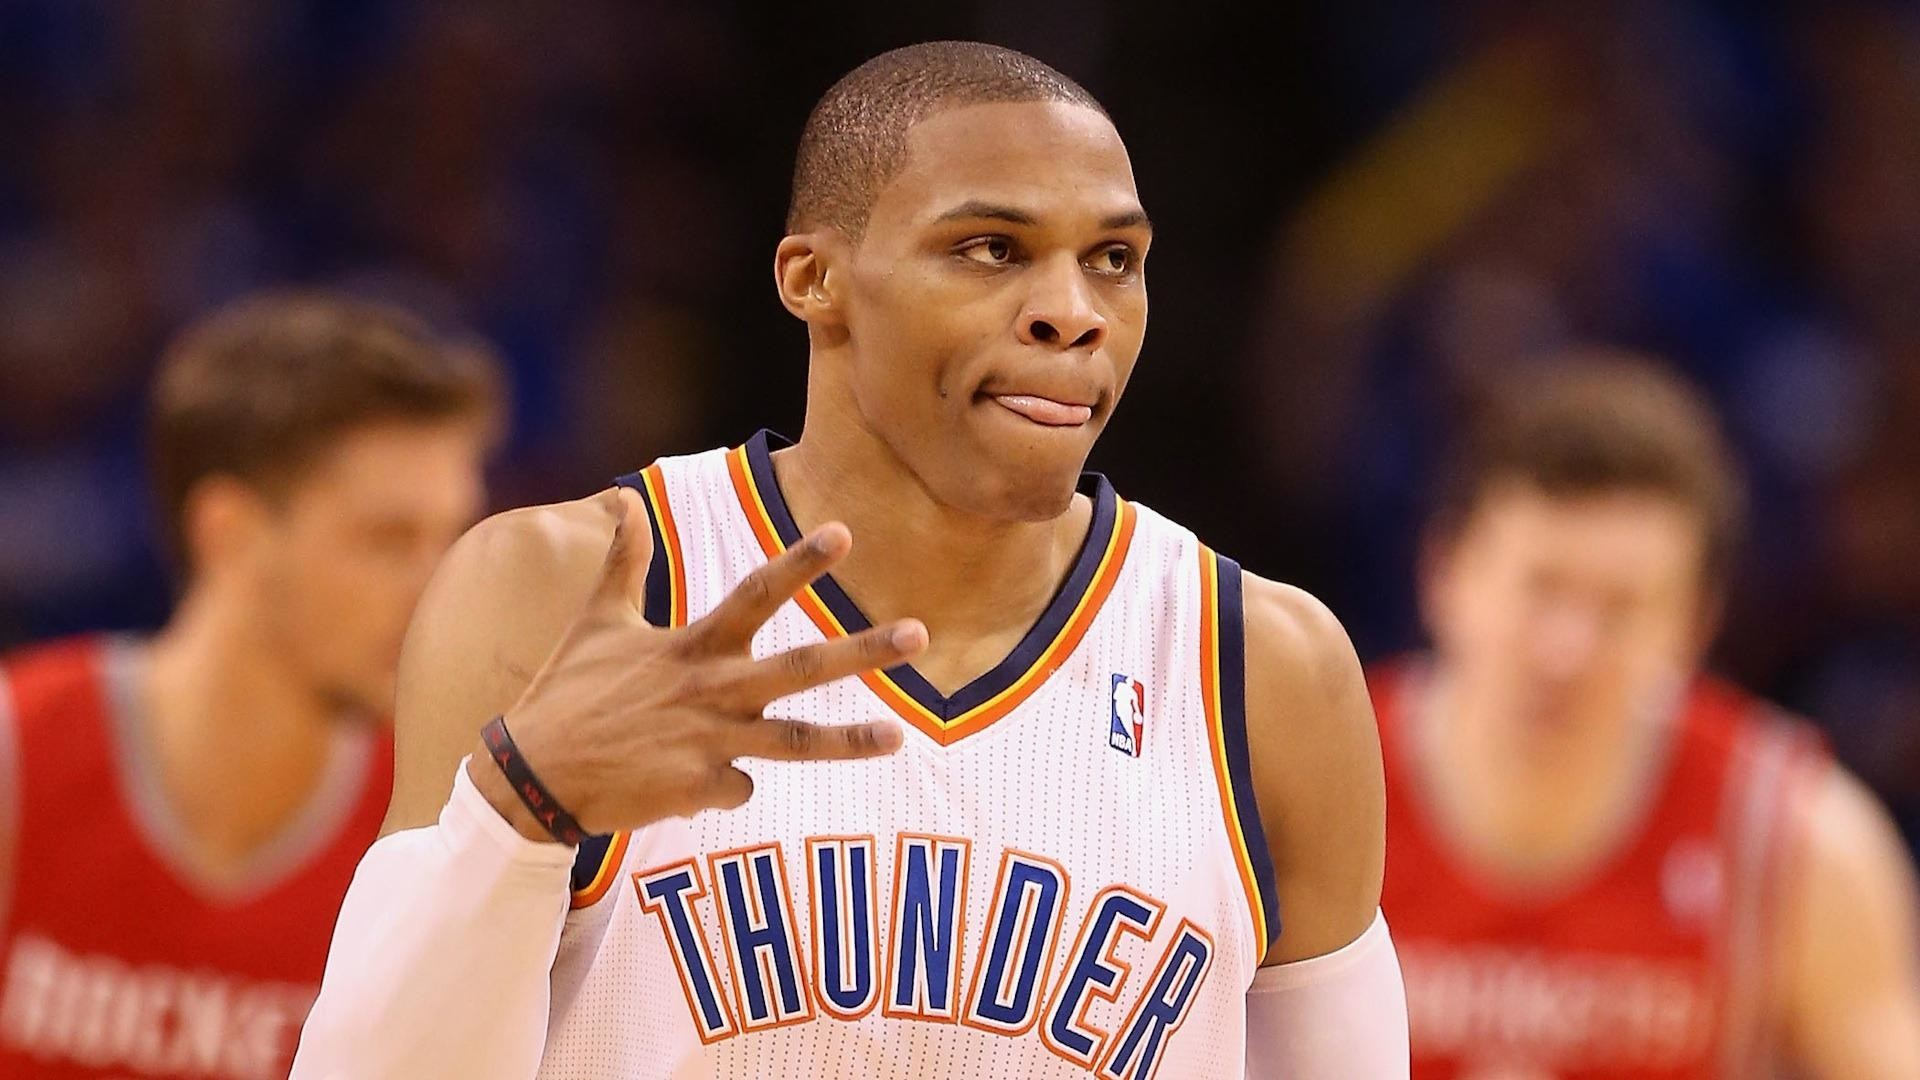 russell westbrook wallpaper images (3) – HD Wallpapers Buzz